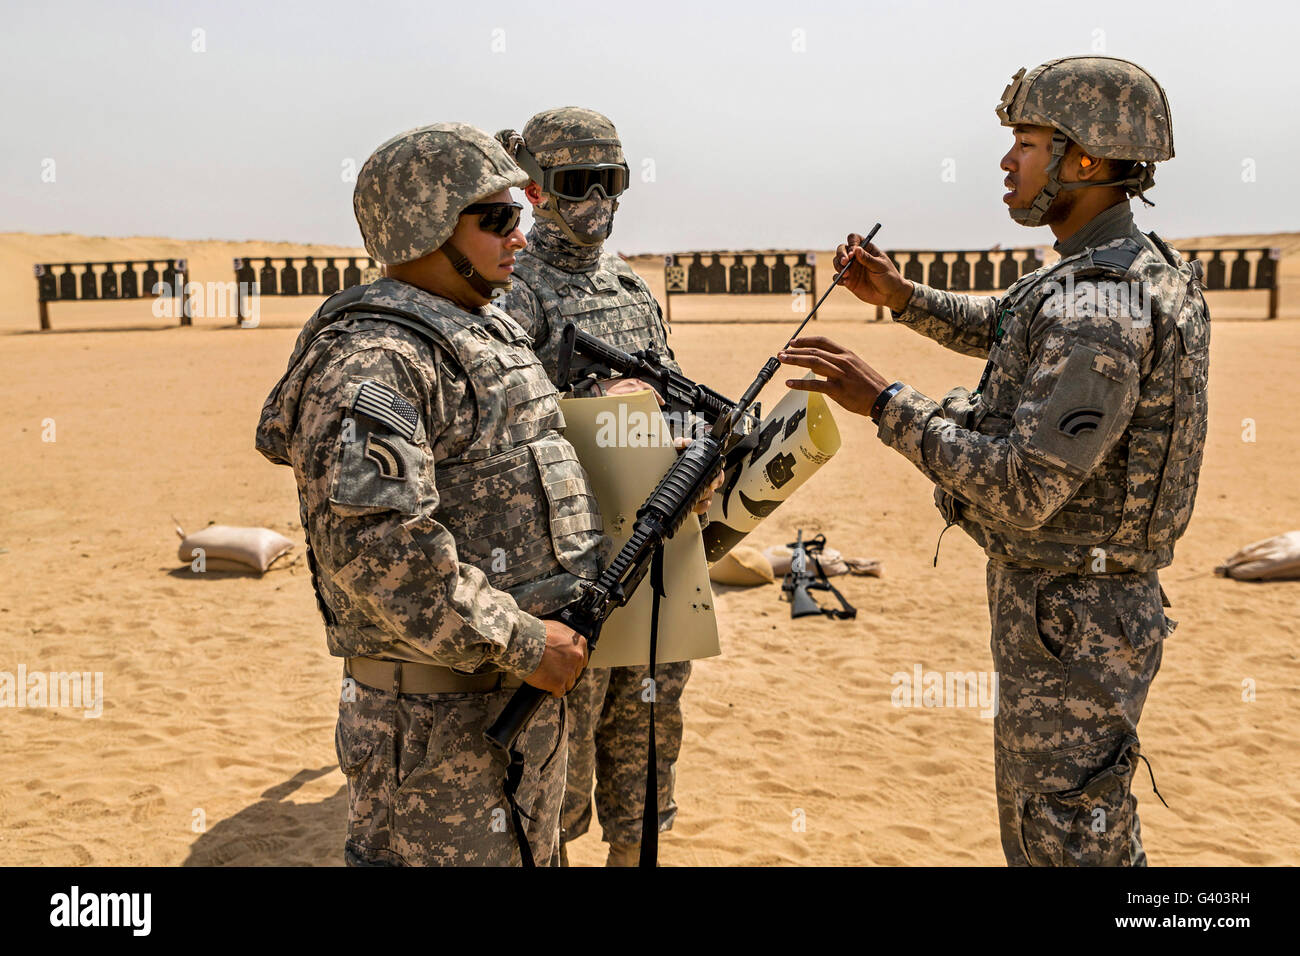 U.S. Army National Guardsmen at a firing range for weapons qualification. - Stock Image